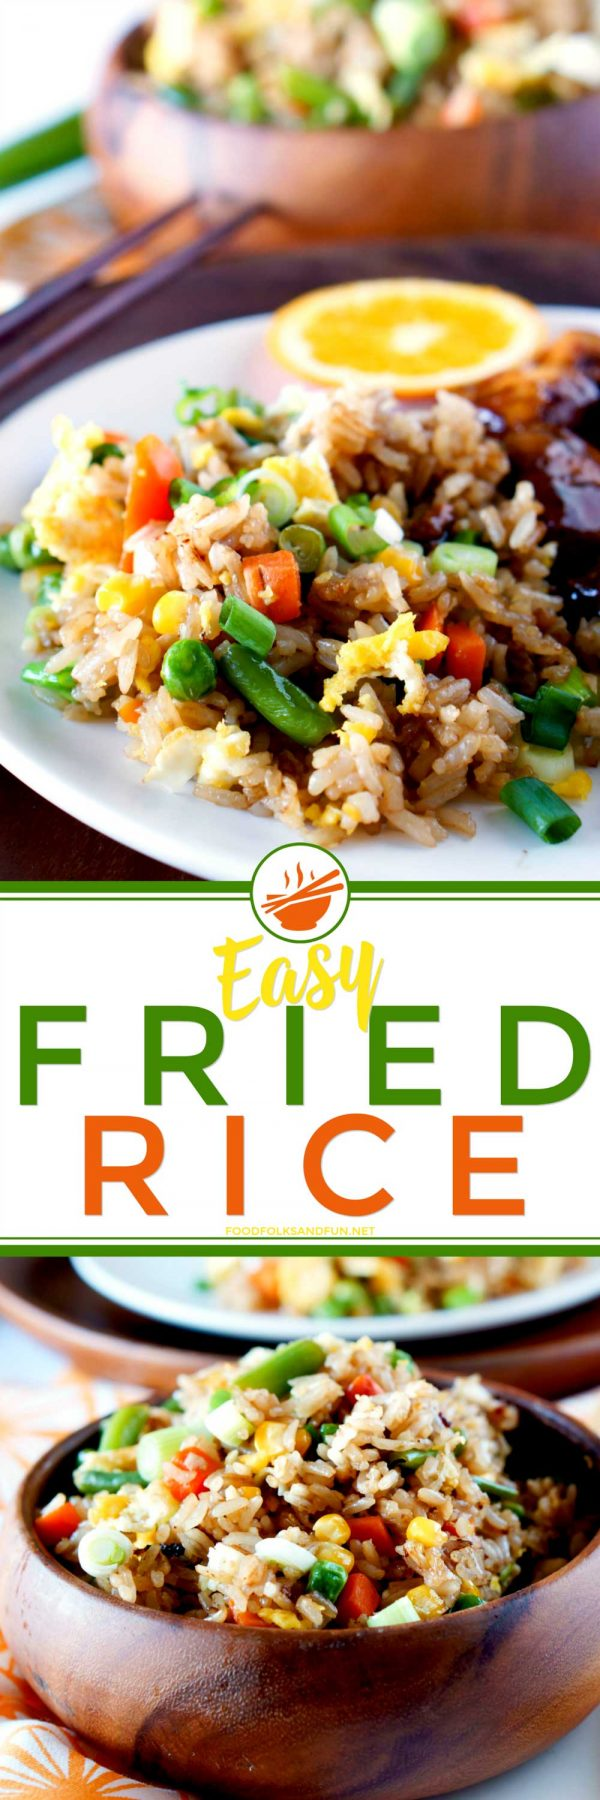 Easy and delicious homemade fried rice recipe.